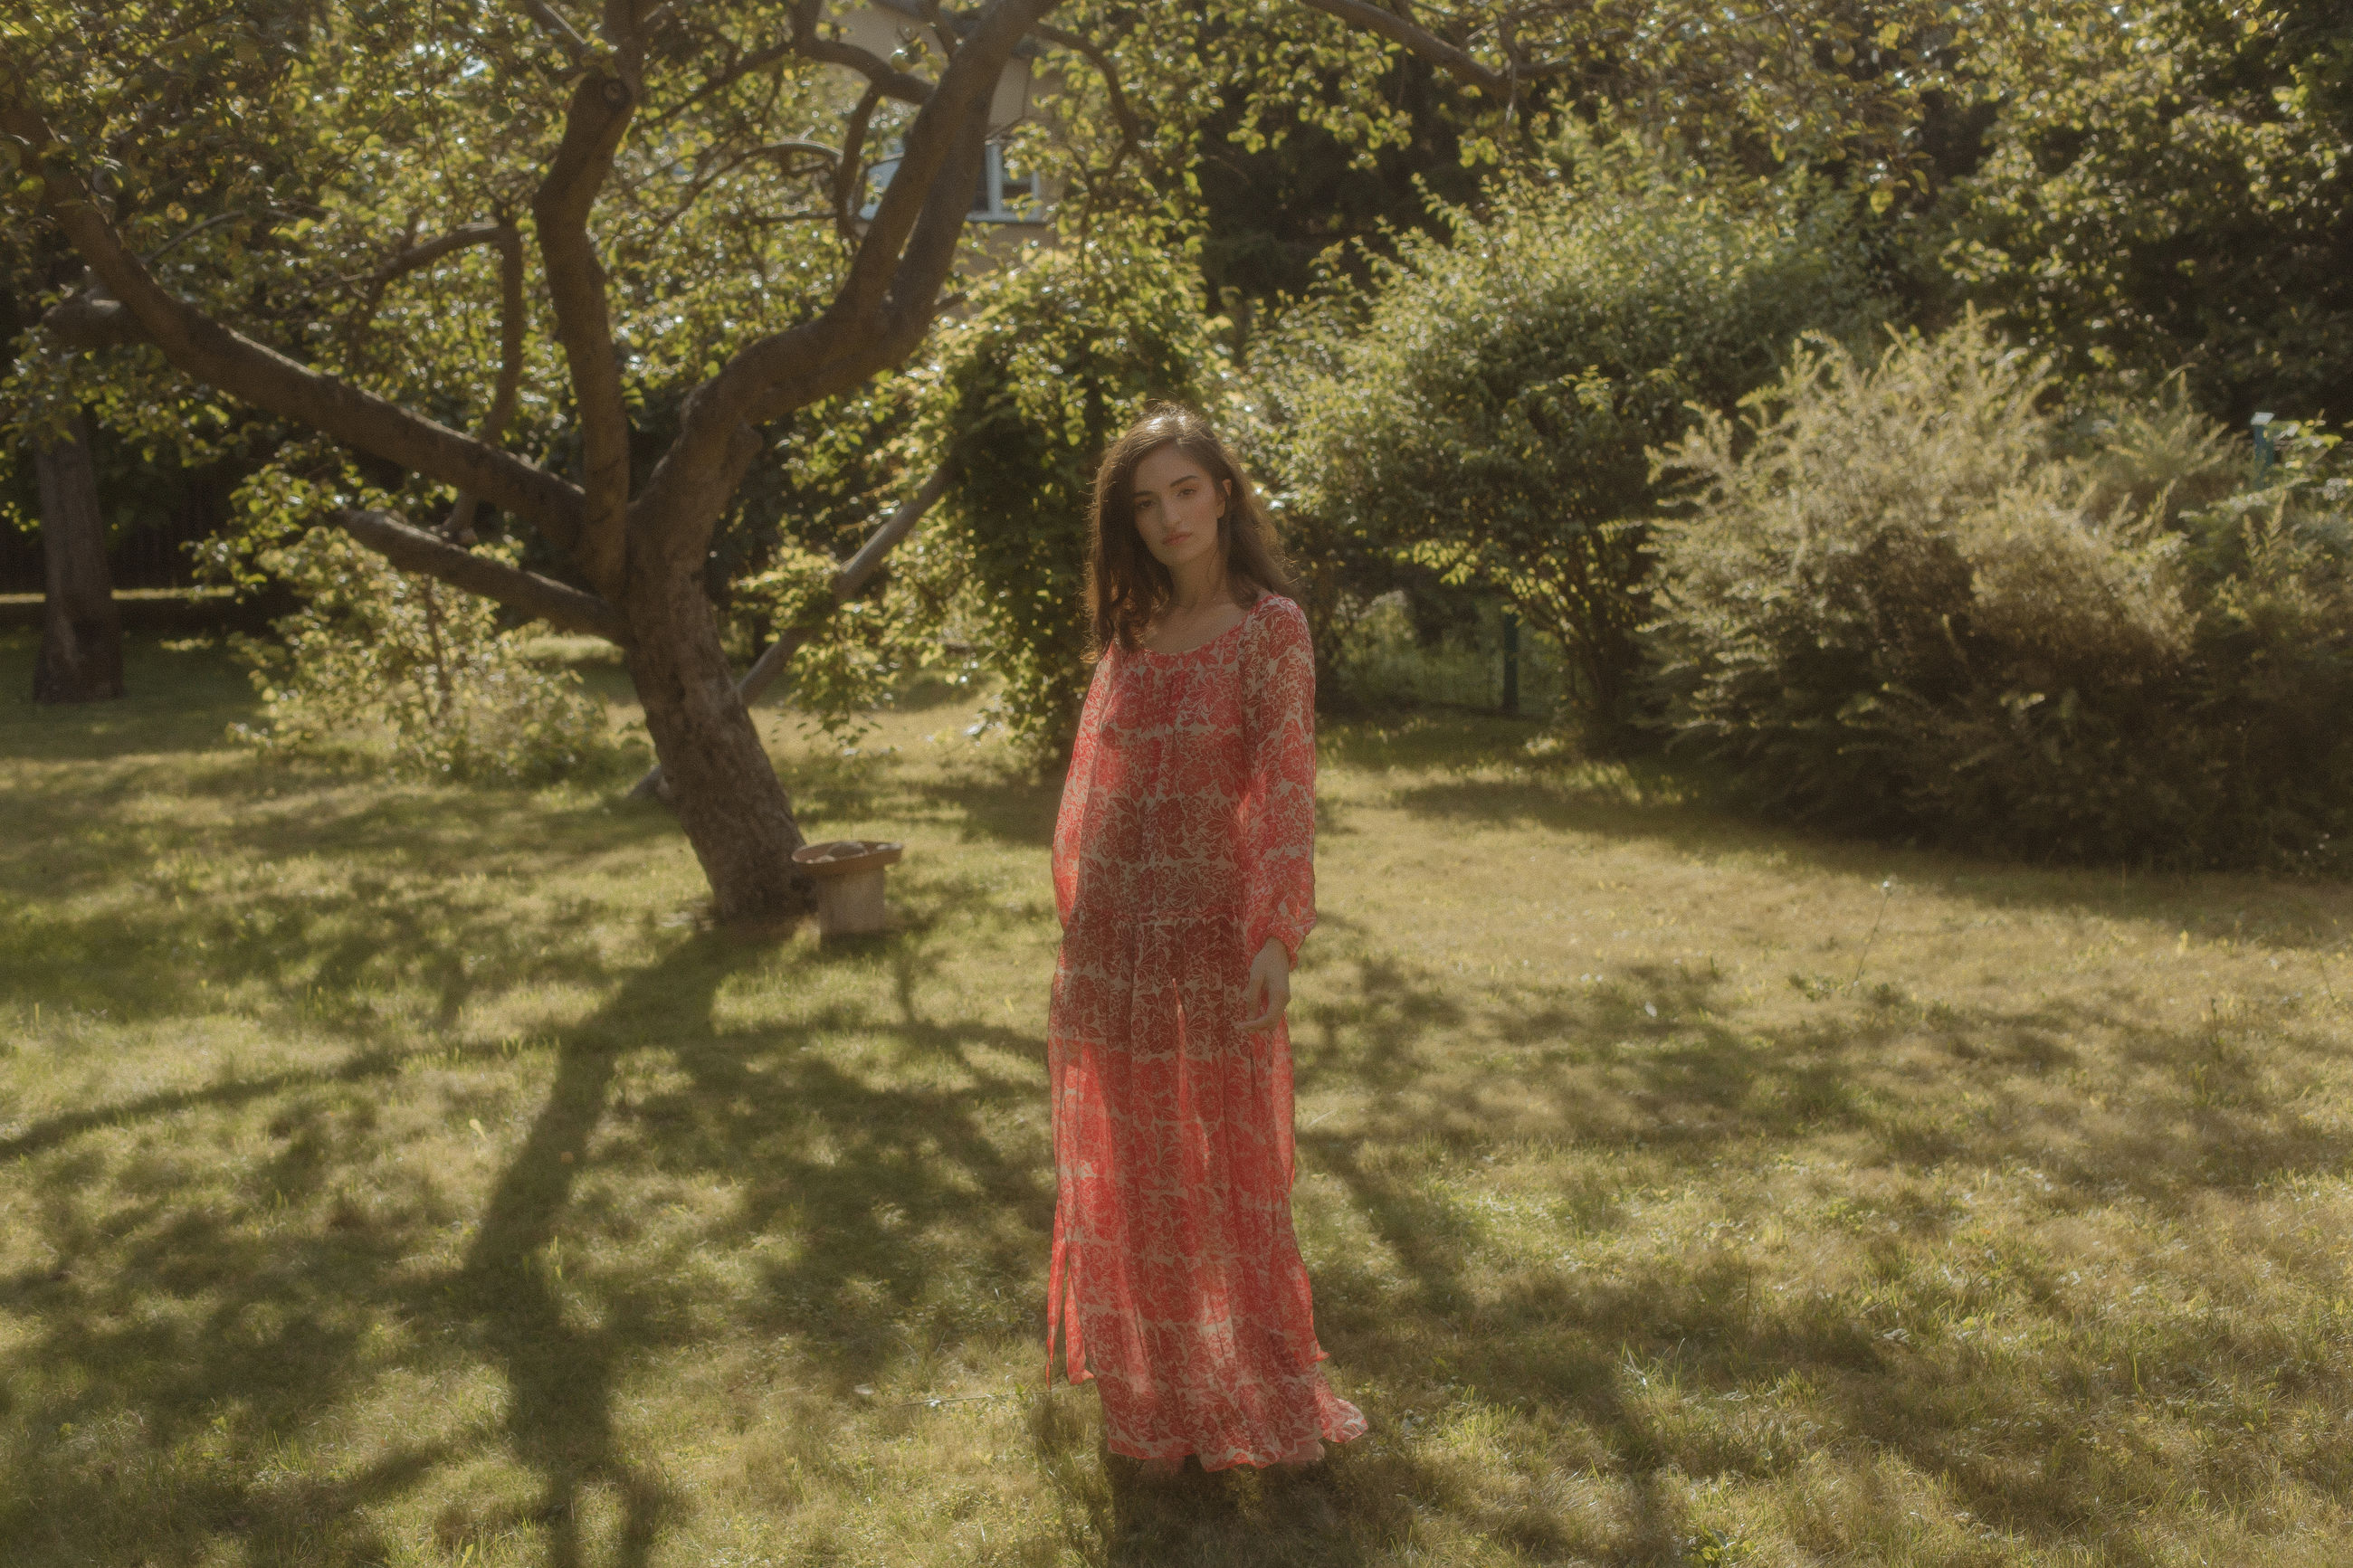 plant, tree, one person, nature, women, sunlight, dress, standing, land, shadow, autumn, fashion, full length, day, woodland, clothing, young adult, leisure activity, growth, front view, hairstyle, flower, outdoors, long hair, field, lifestyles, adult, portrait, casual clothing, grass, green, female, spring, looking at camera, red, beauty in nature, three quarter length, forest, child, looking, smiling, tranquility